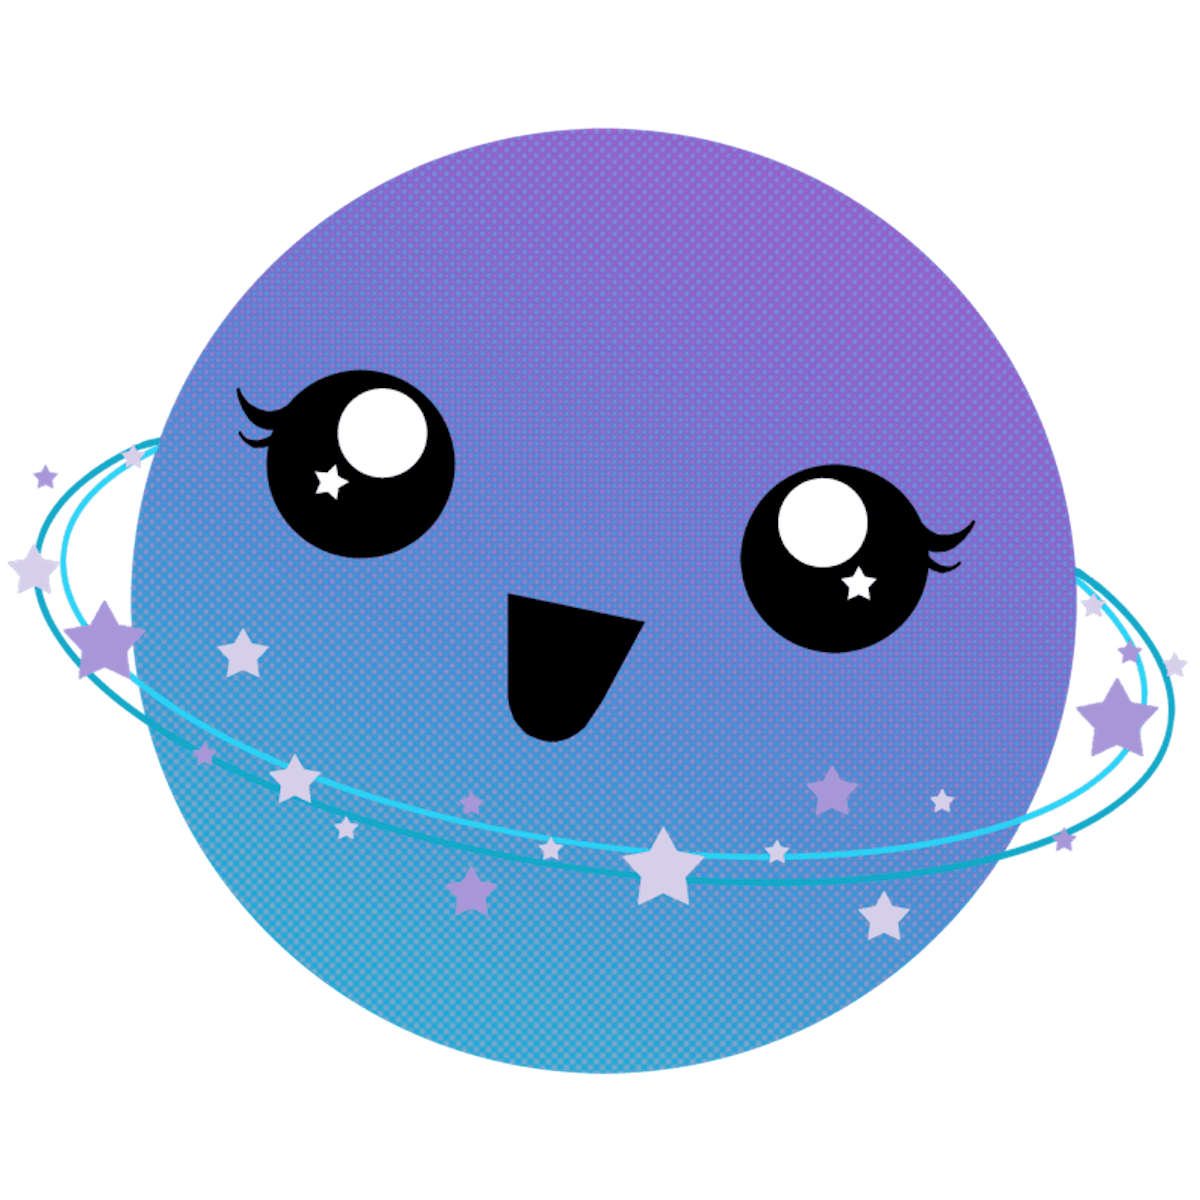 Planets clipart kawaii. Planet cute kitschy and